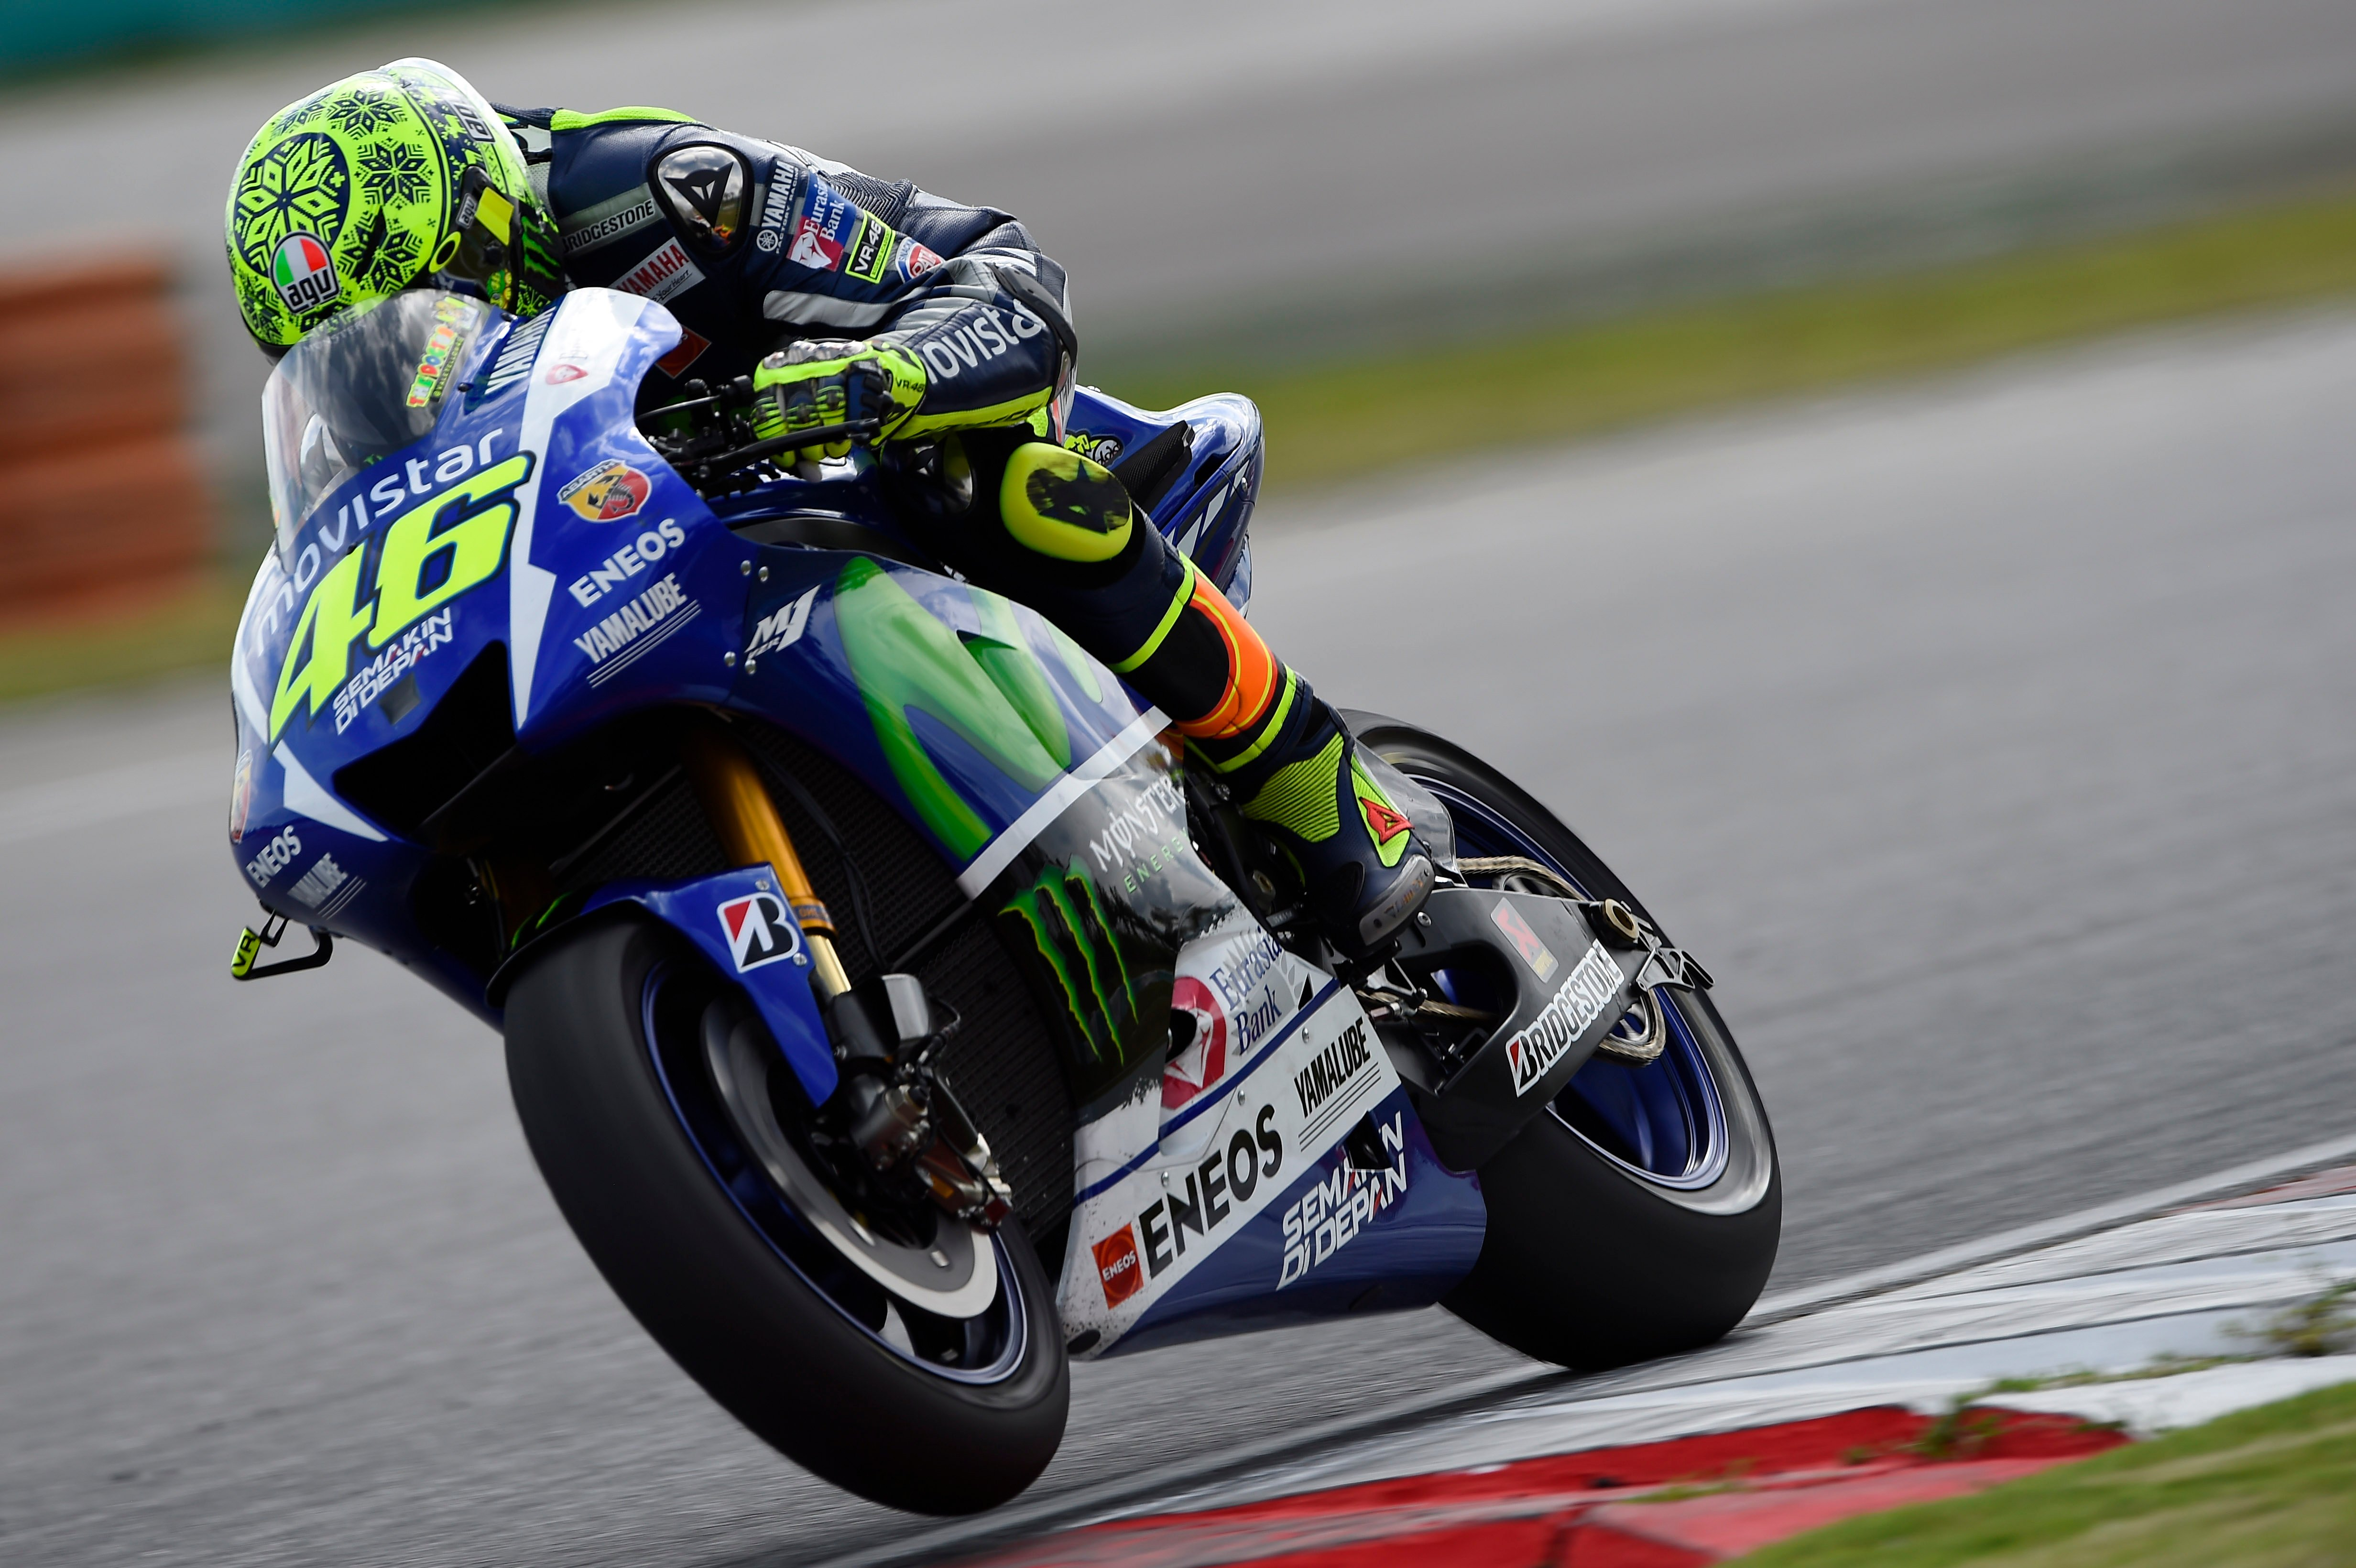 Valentino Rossi Wallpaper HD - WallpaperSafari